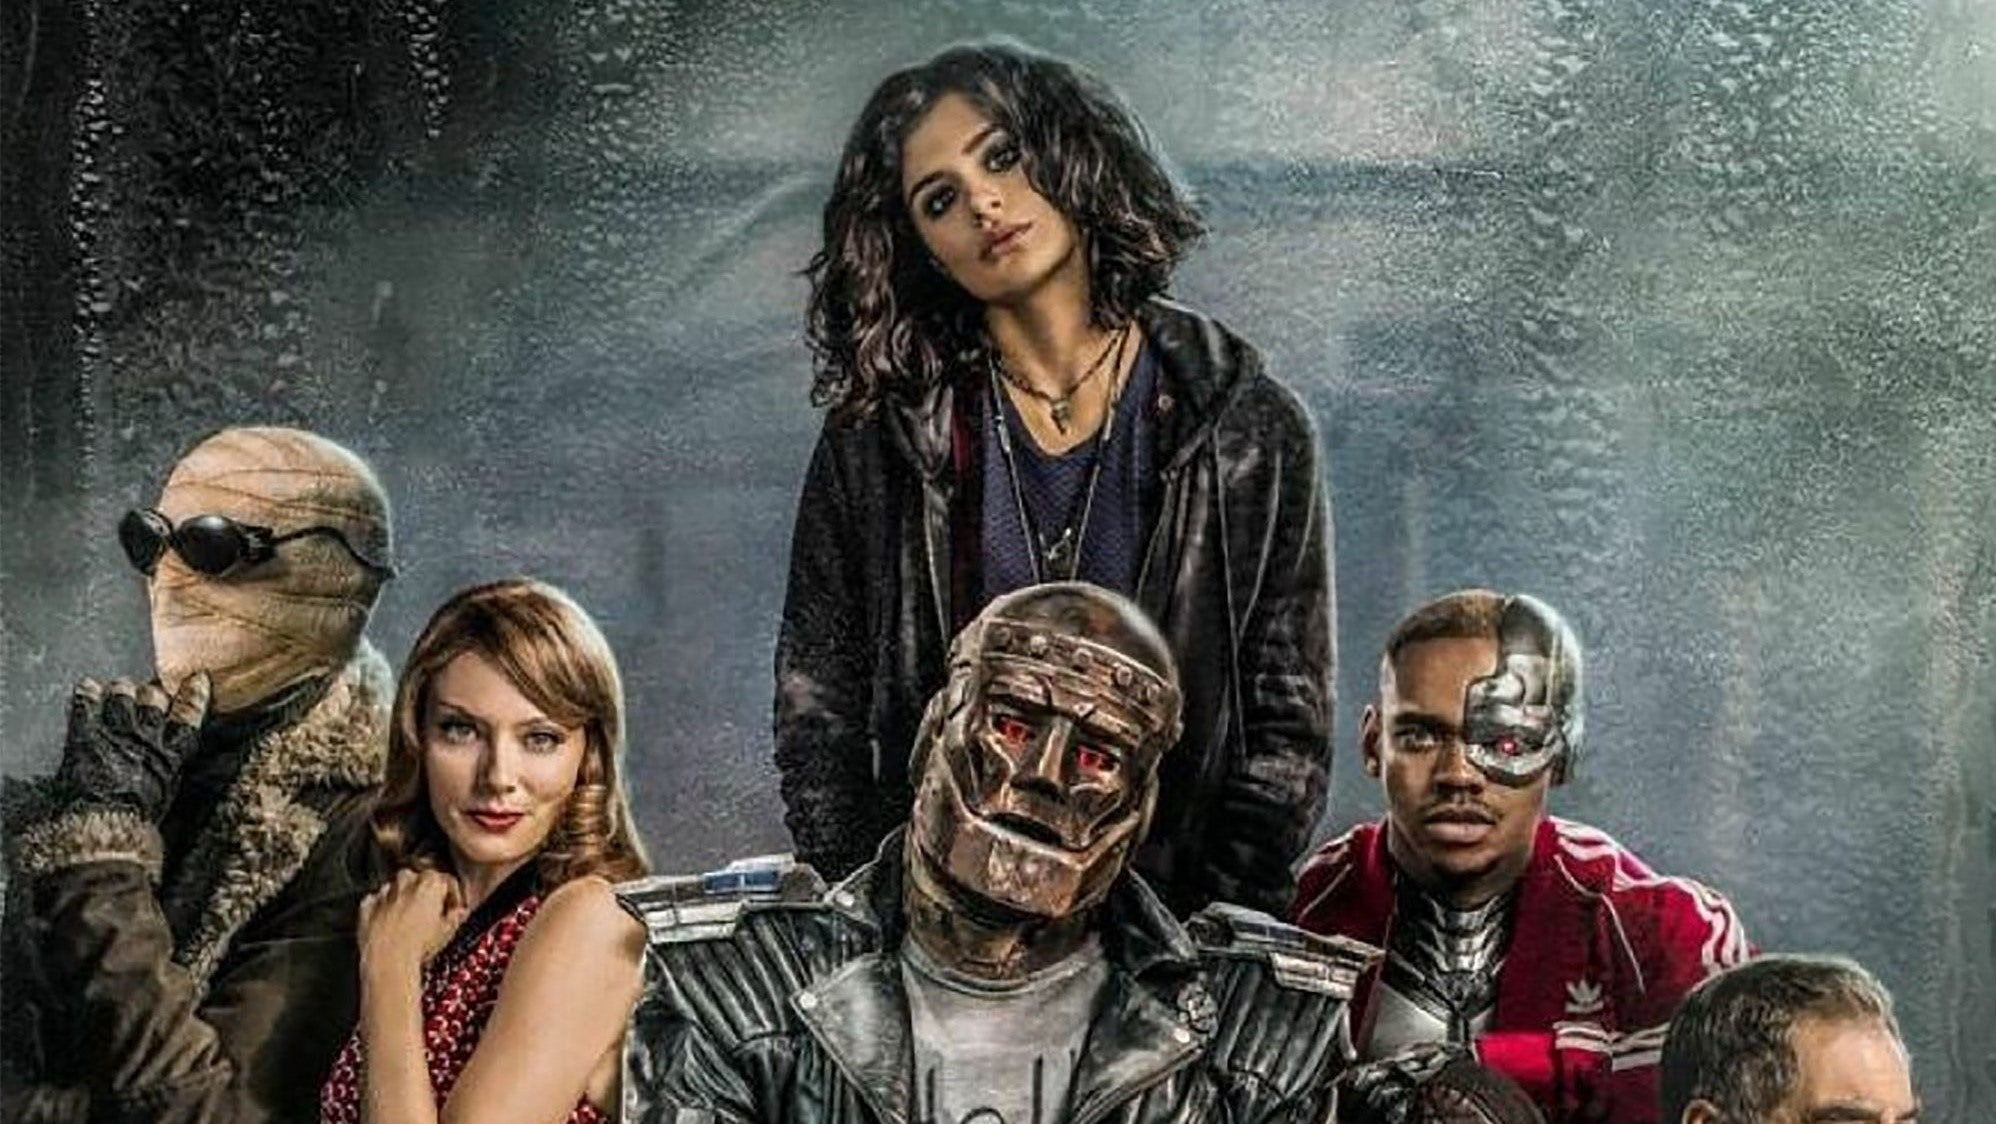 Doom Patrol Season 2 Trailer Reveals The New Villains From Comic